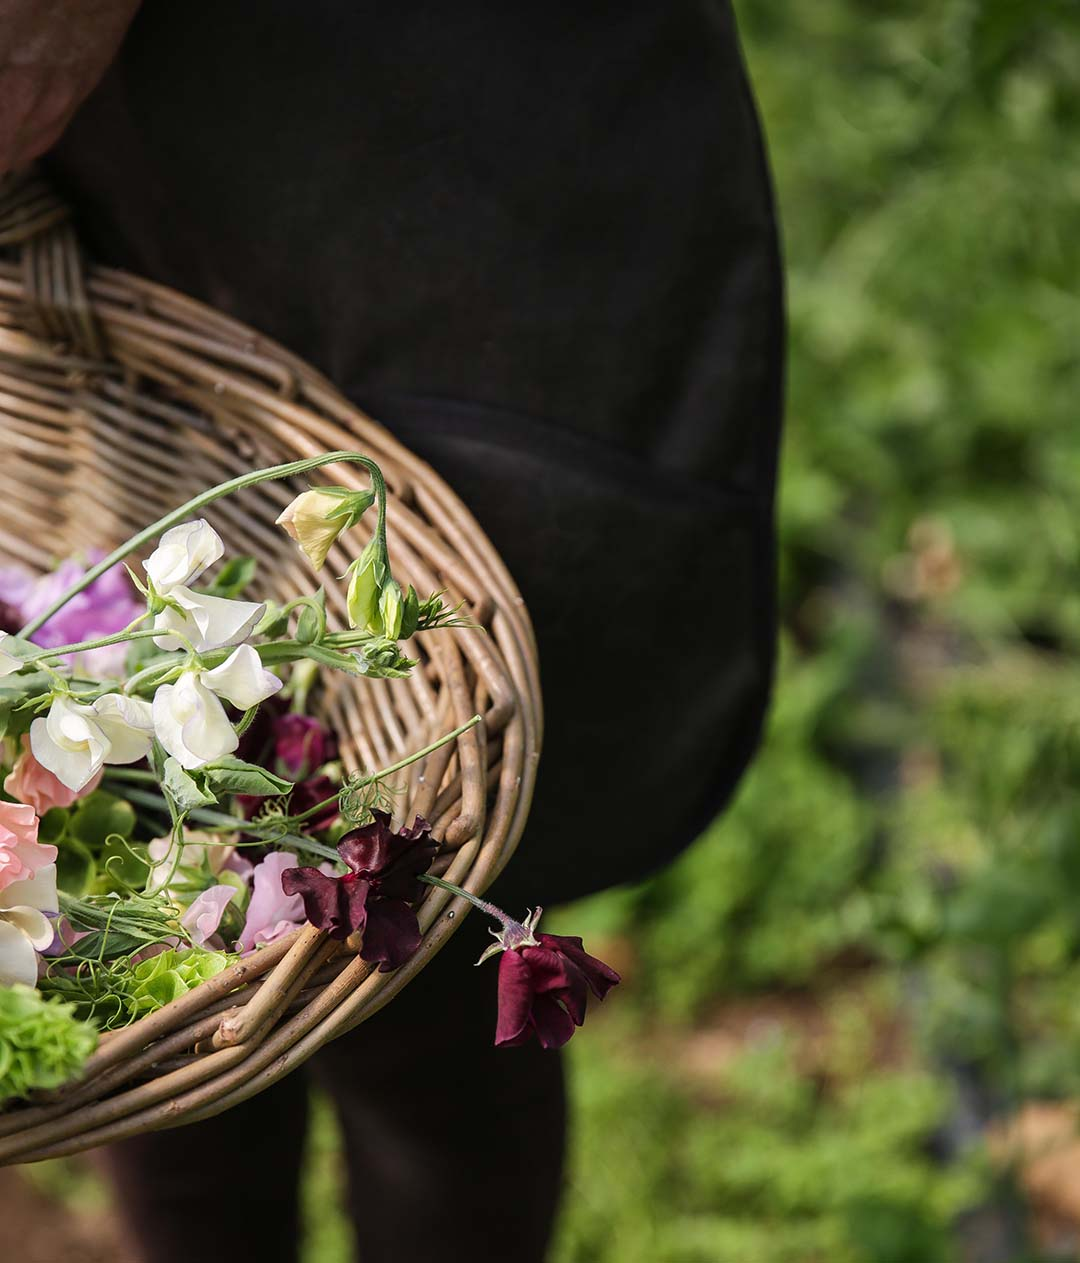 Basket of sweet peas